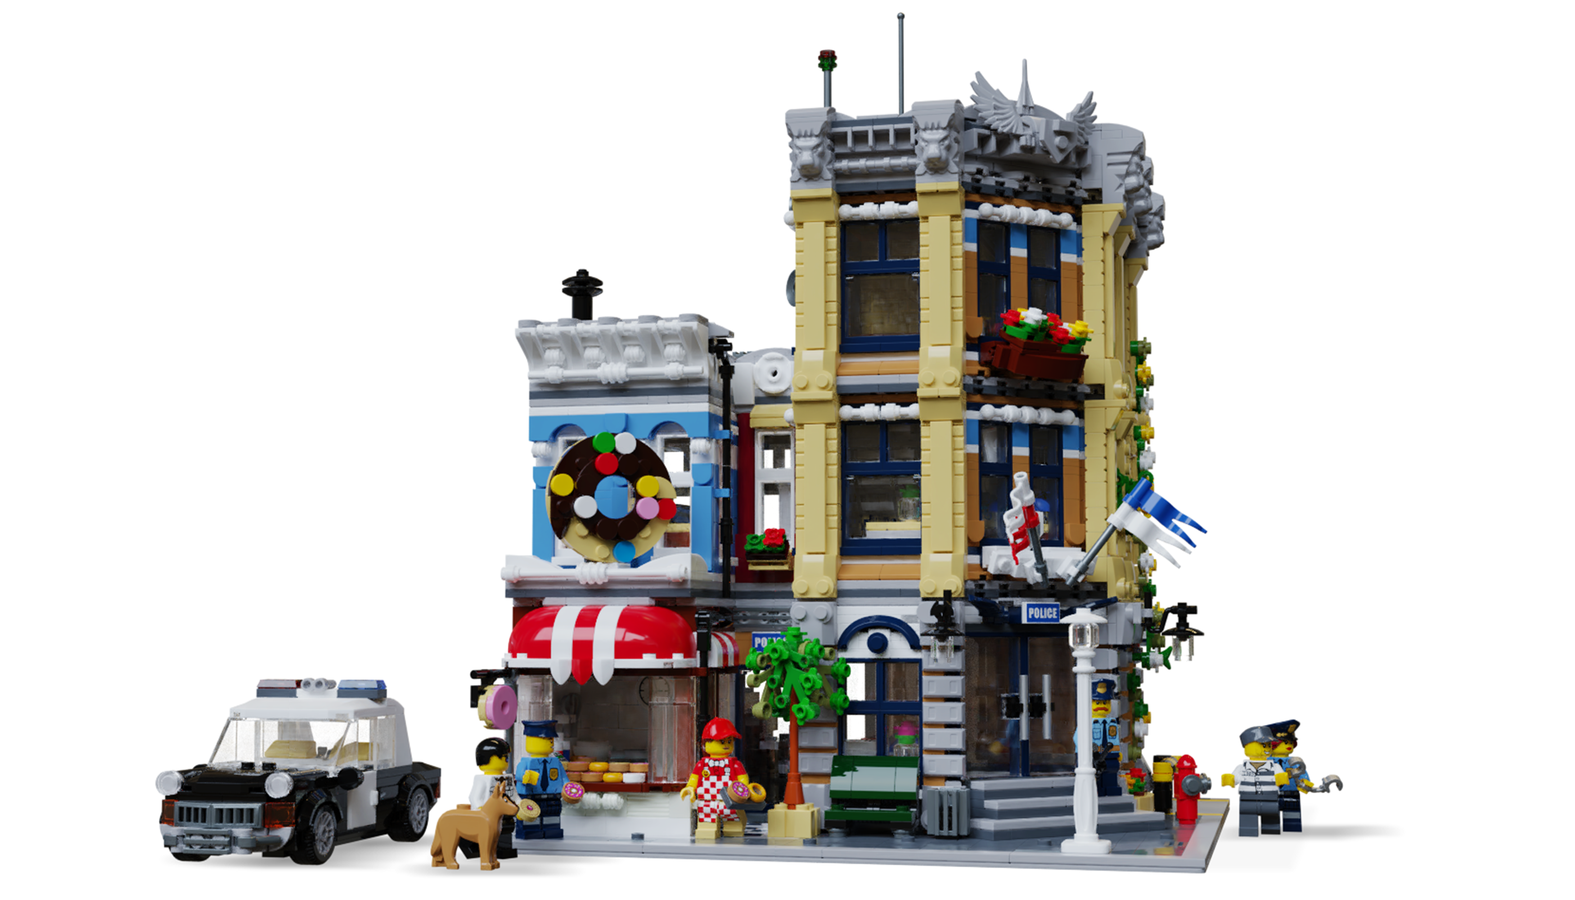 lego-modular-building-polizeistation-brickned1980-ideas-front zusammengebaut.com